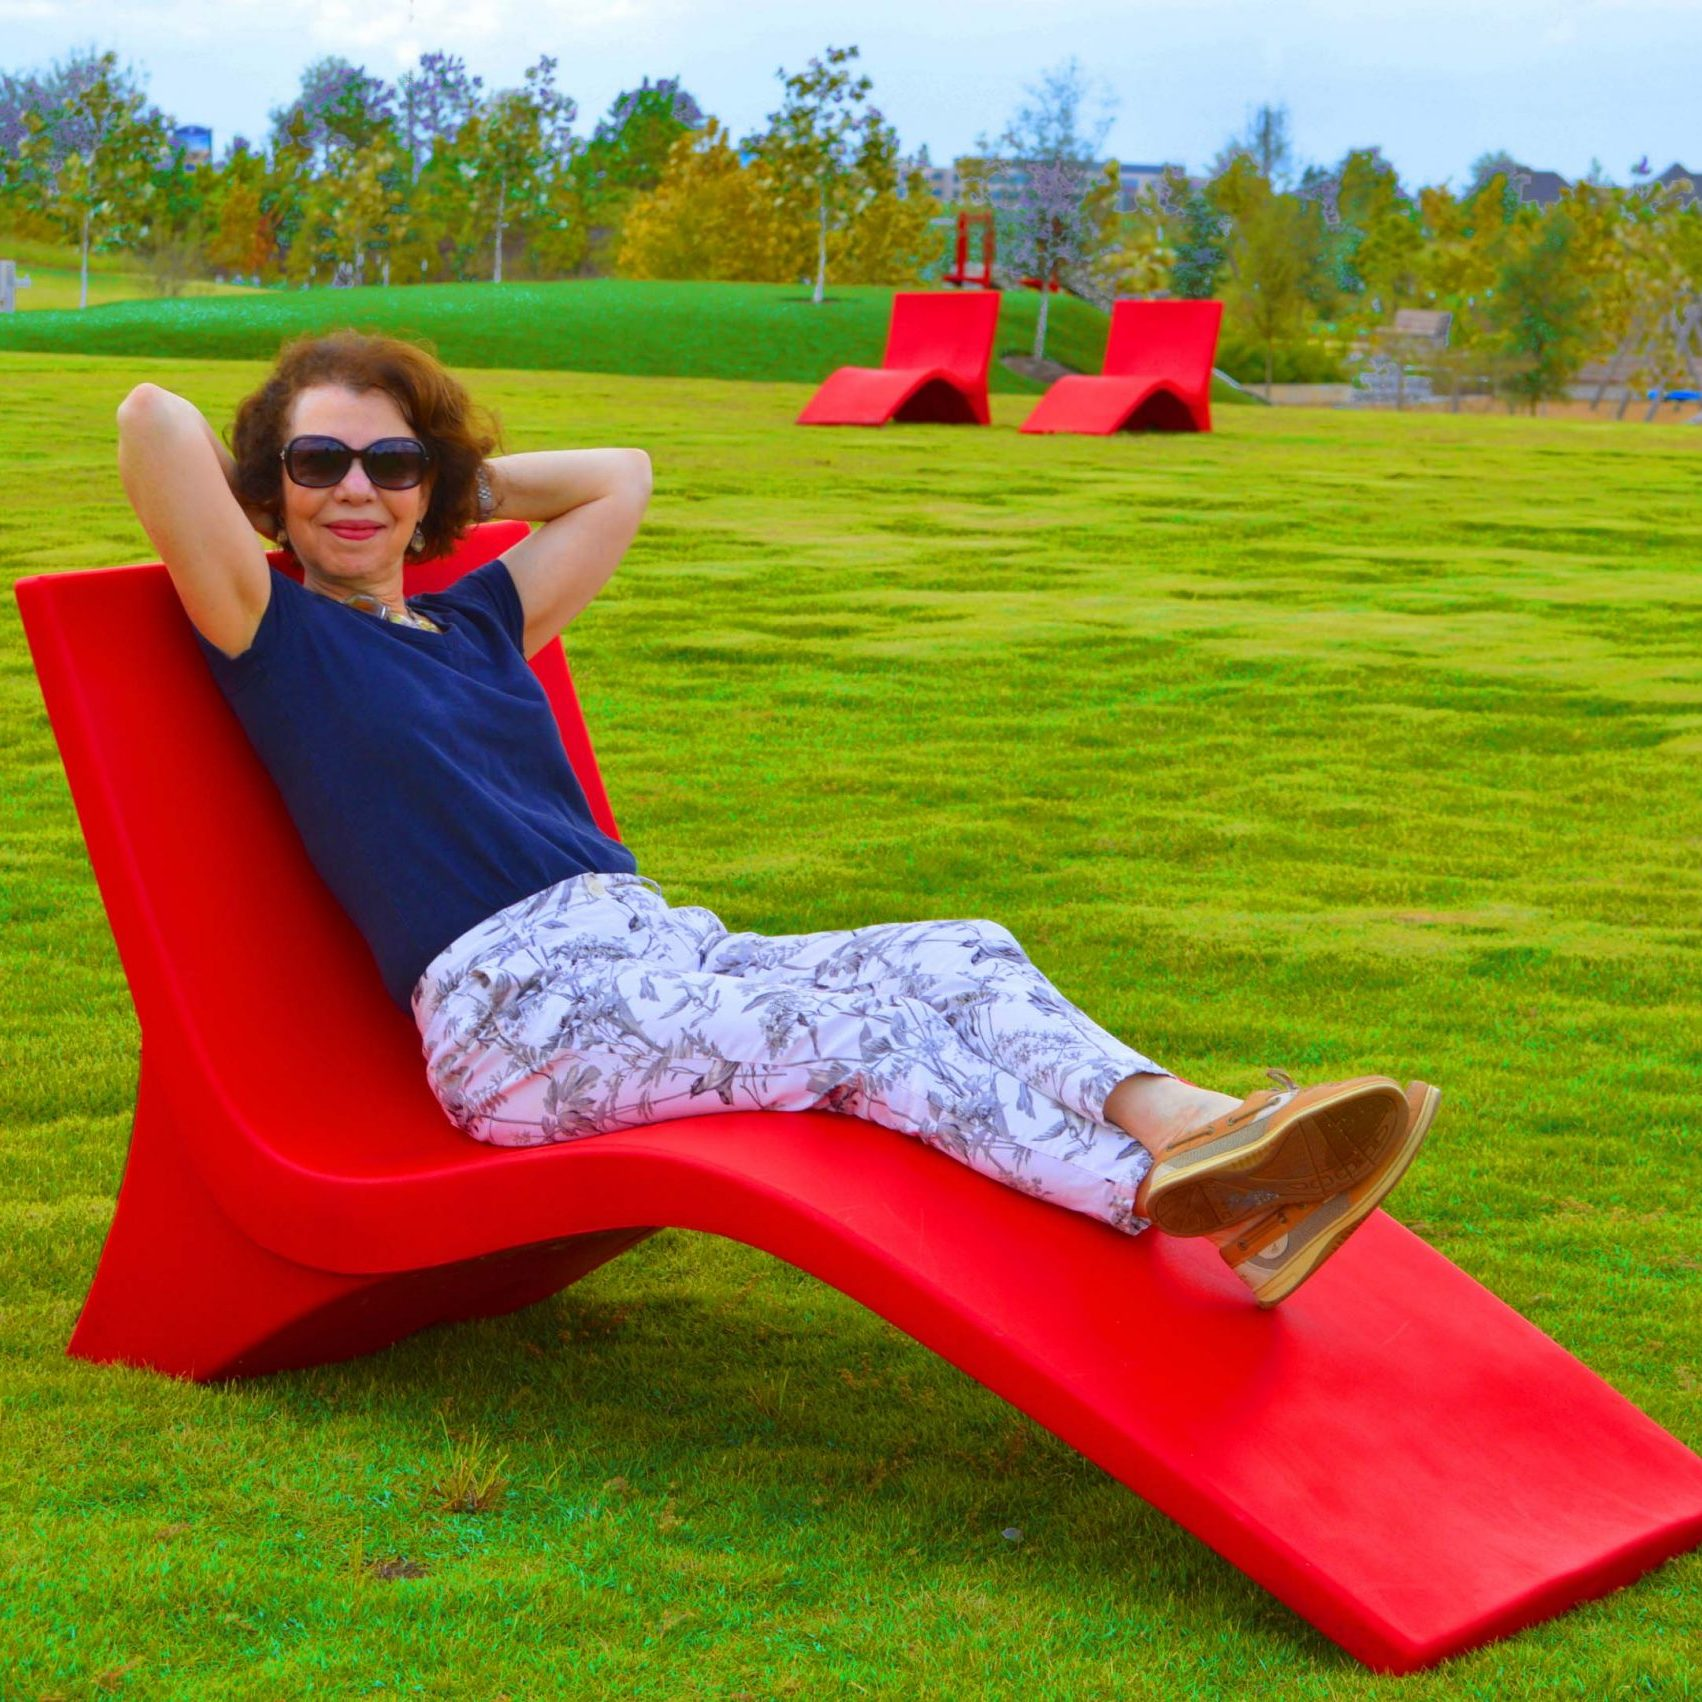 LuLu on Red LawnChairs-med_2